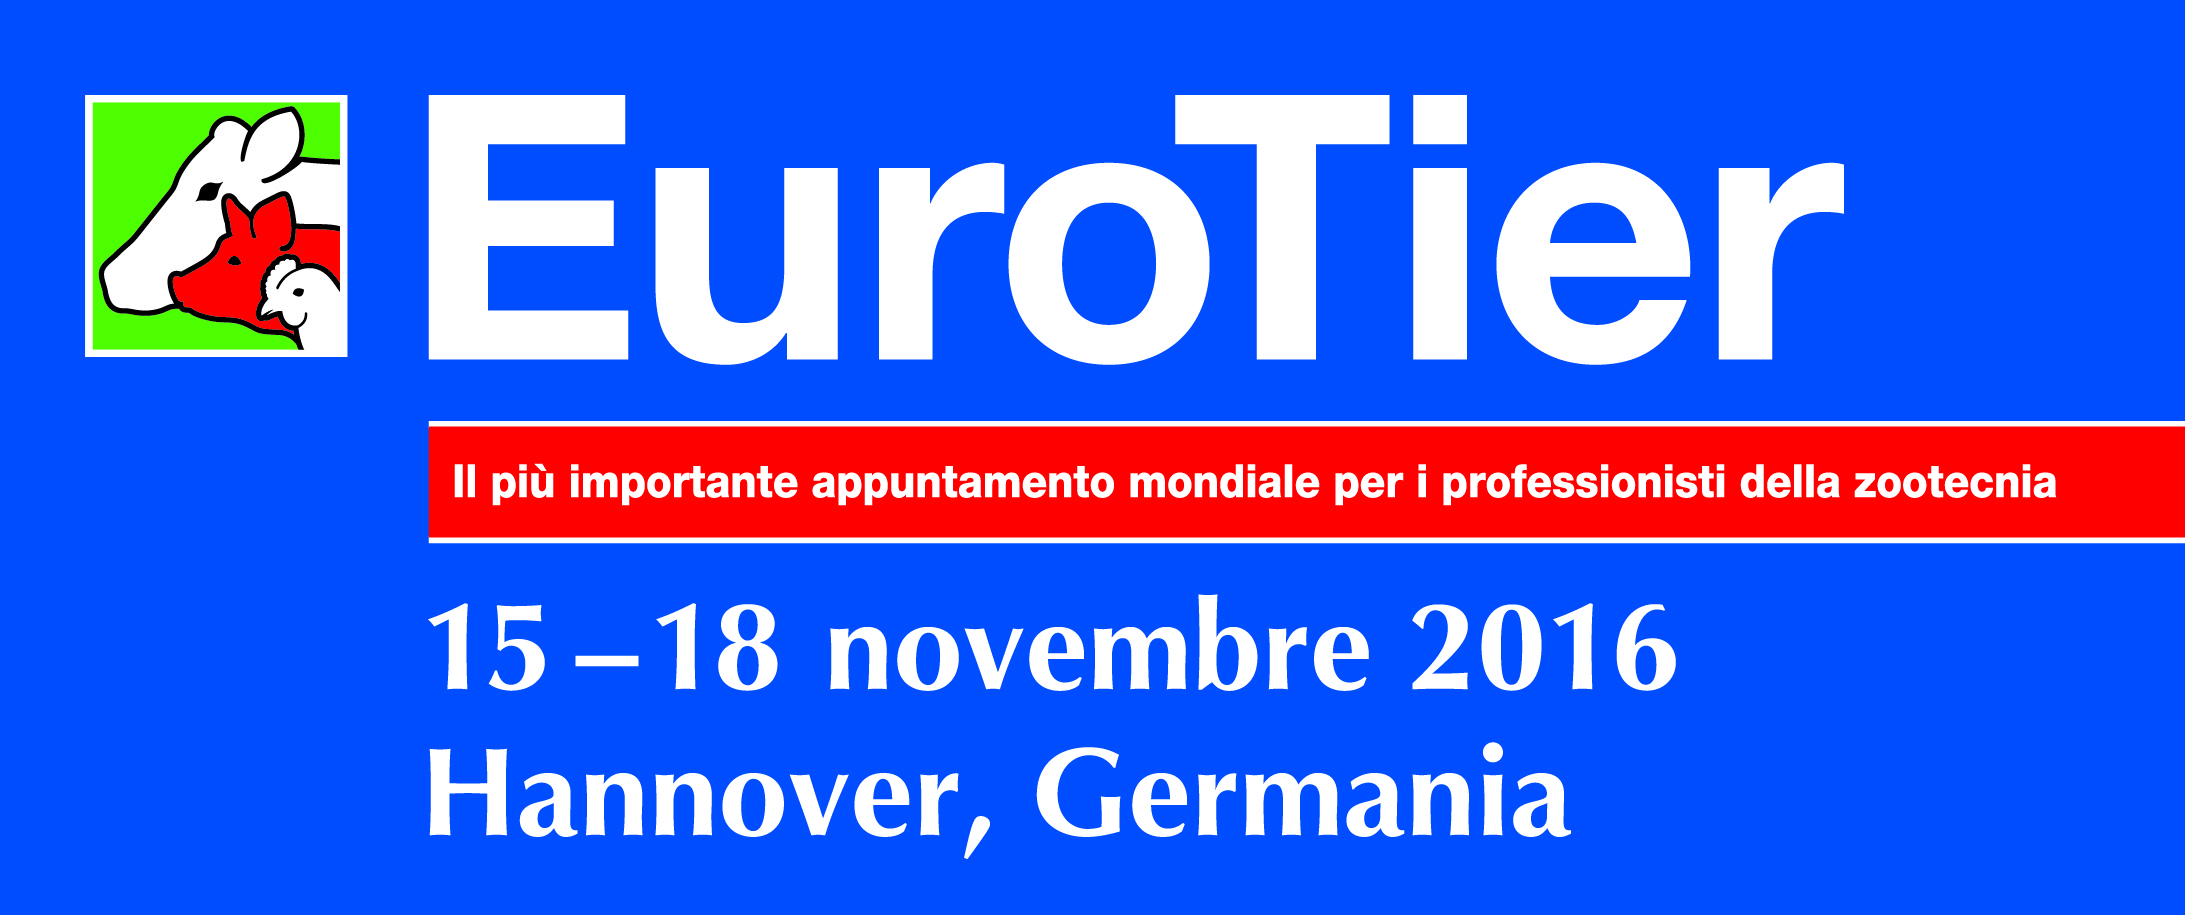 EUROTIER 2016 – Hannover